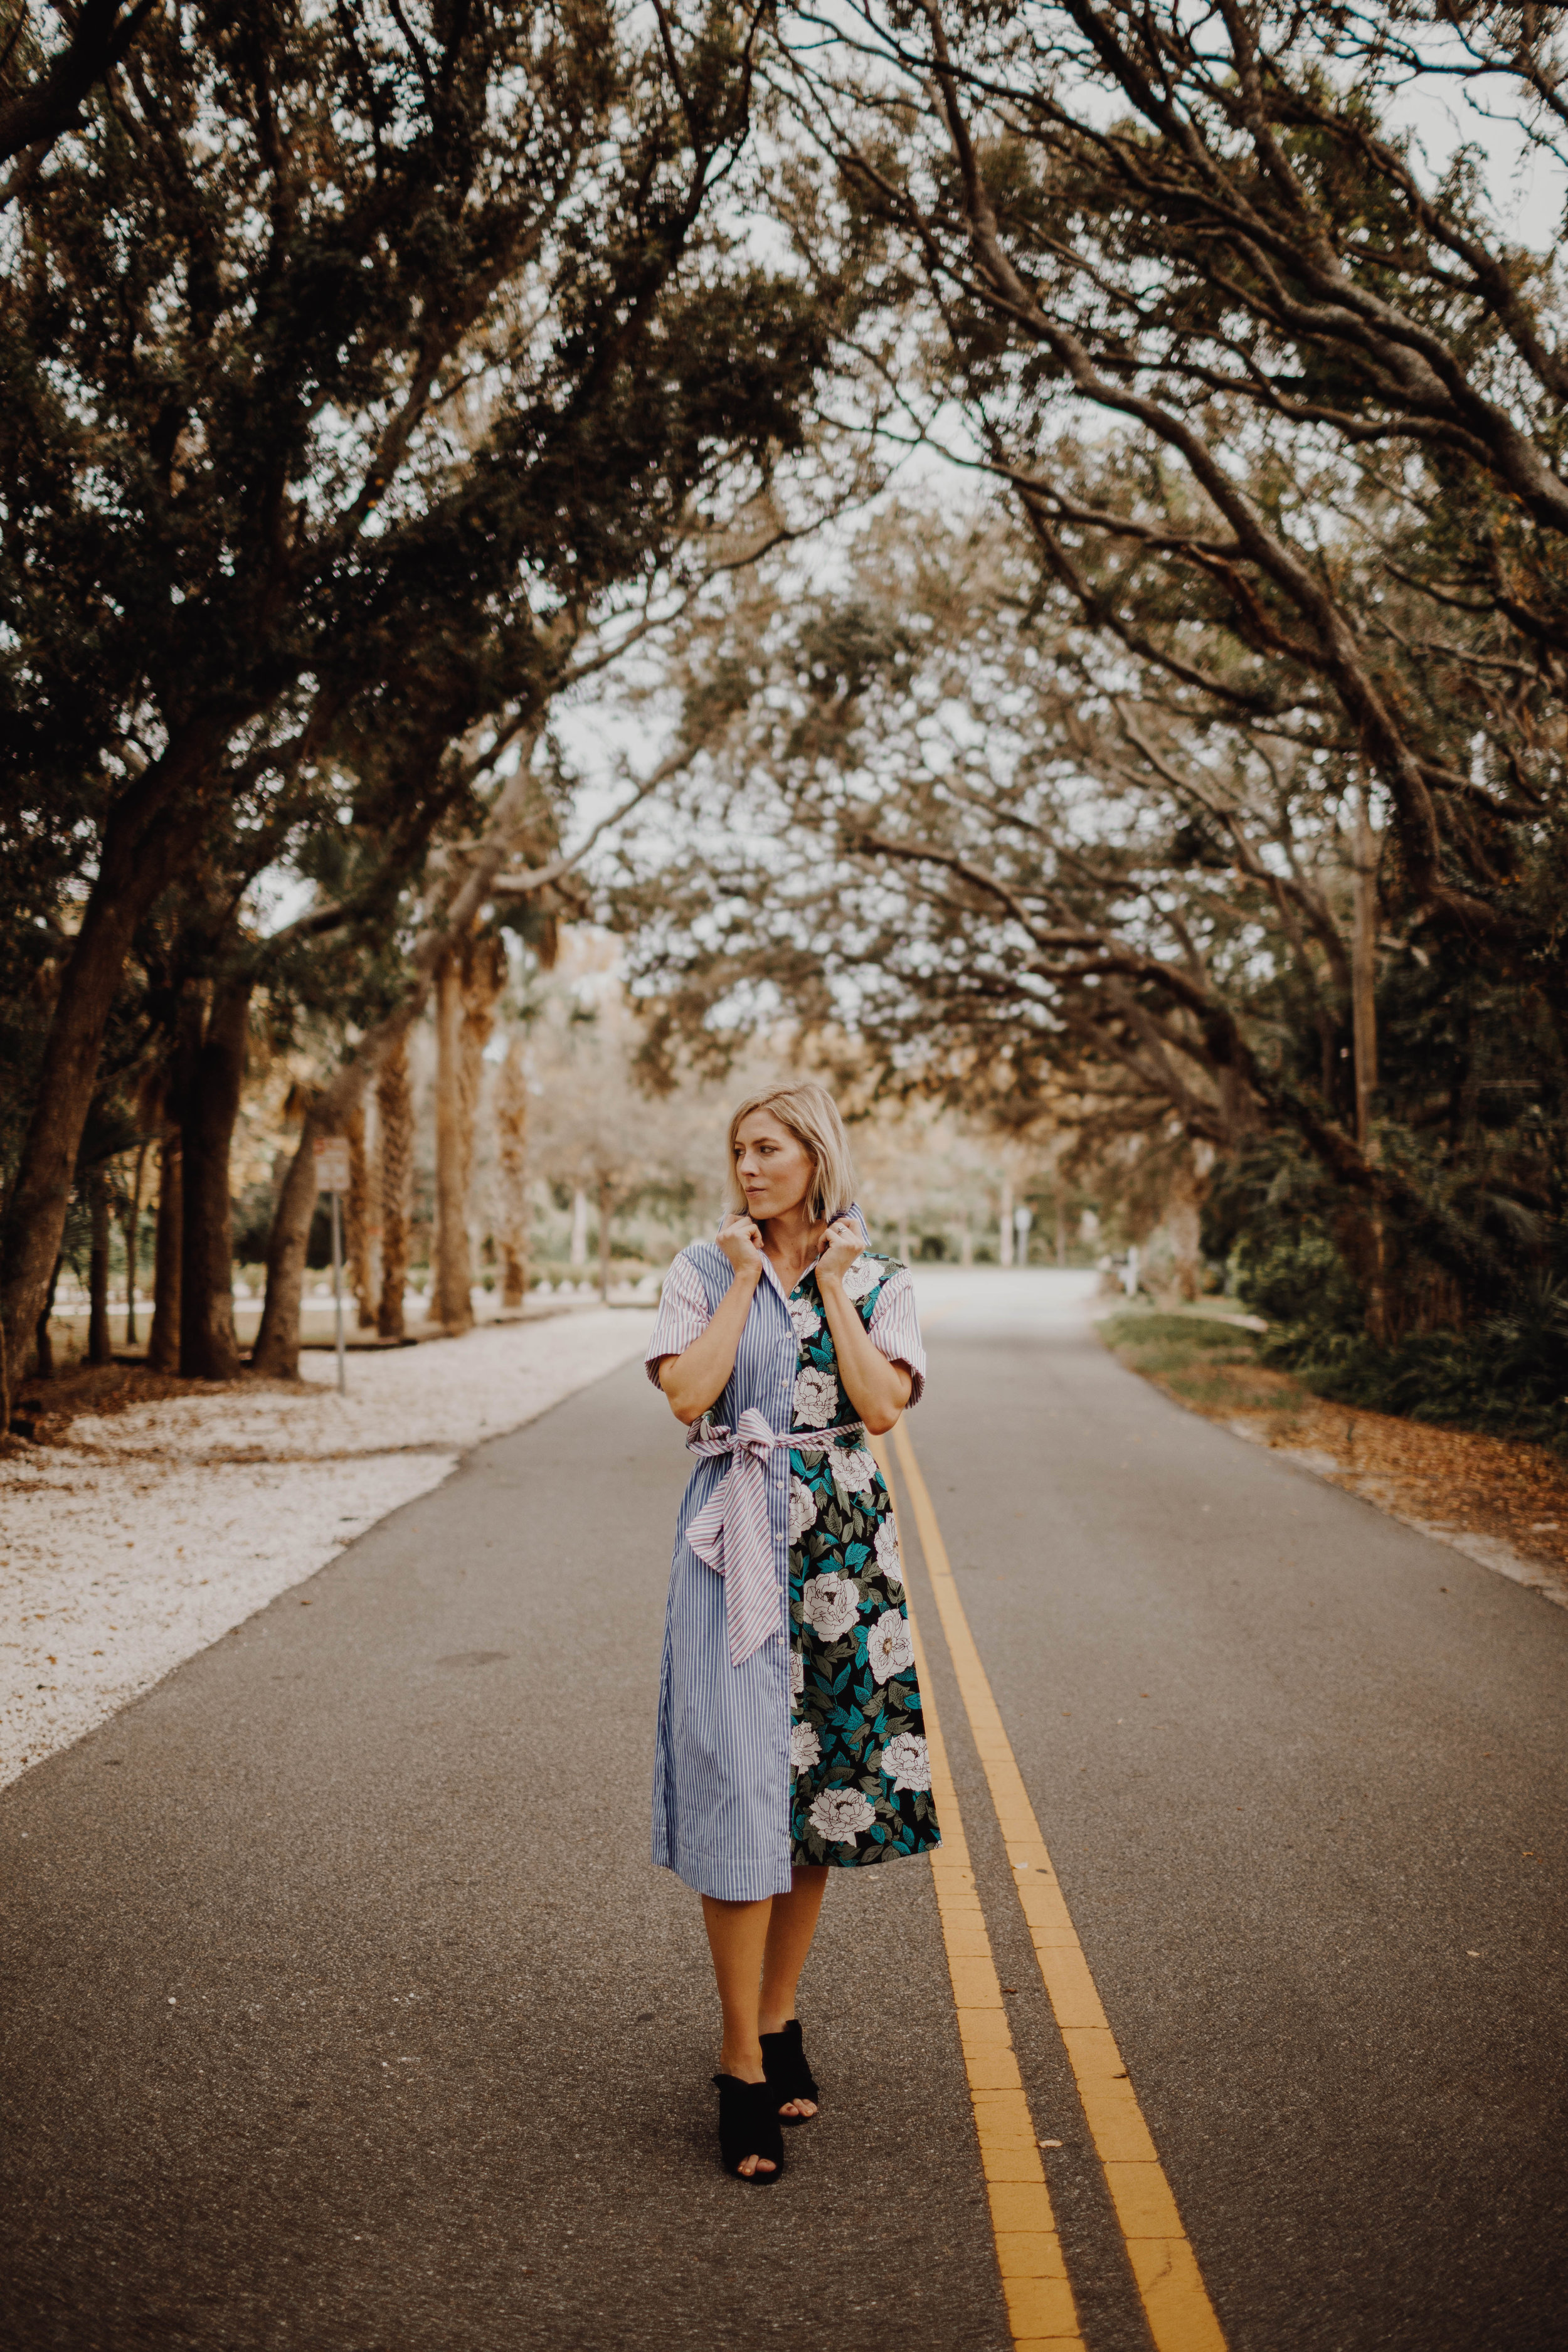 Mixed Print Shirtdress from Rent the Runway worn by Stephanie Mack of The Borrowed Babes Fashion